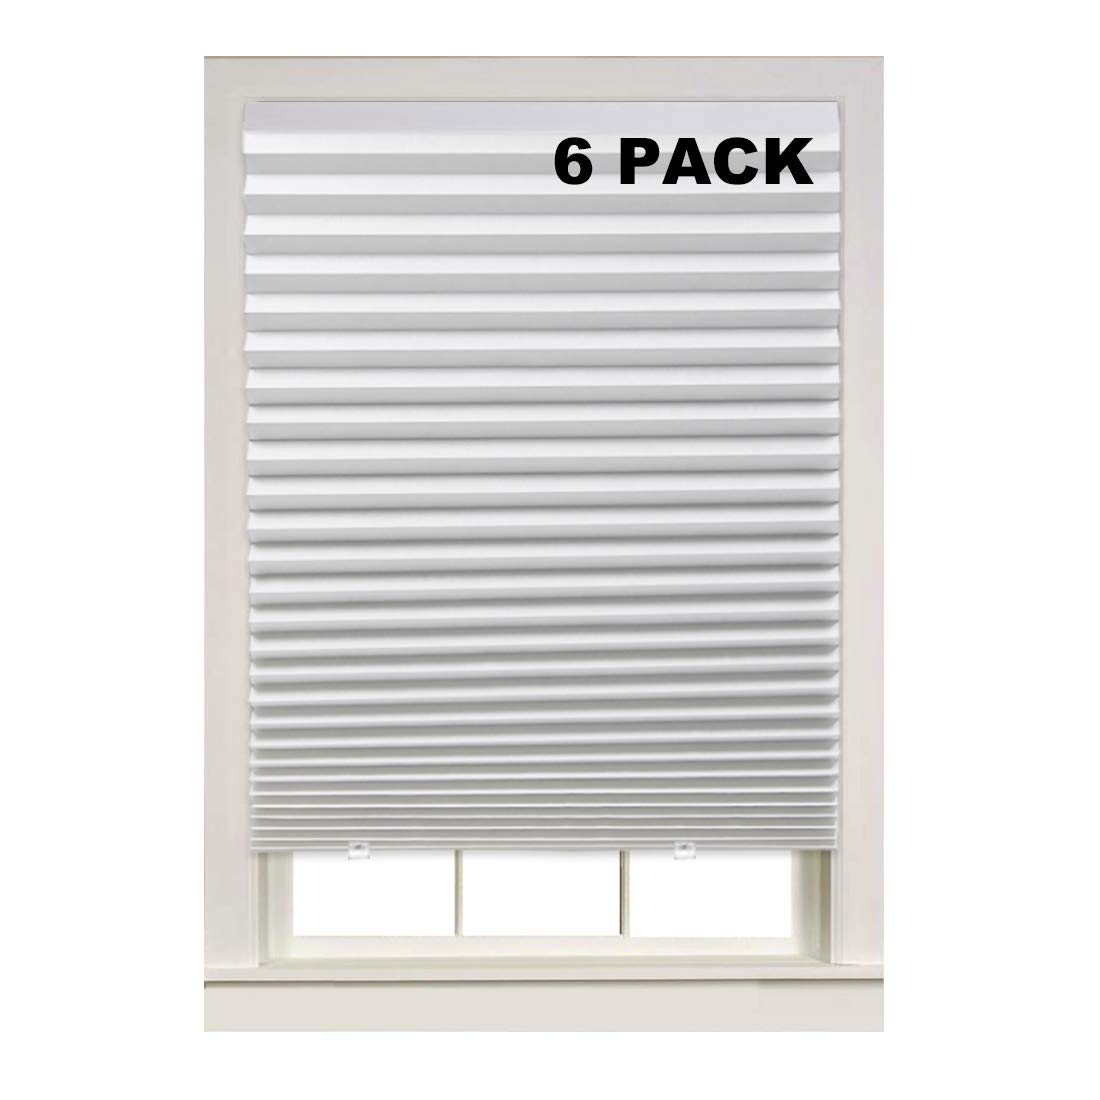 Turquoize Light Filtering Temporary Pleat Paper Shades, White, Quick Fix & Easy to Install, 36'' x 72'', 6-Packs, with 12 Clips by Turquoize